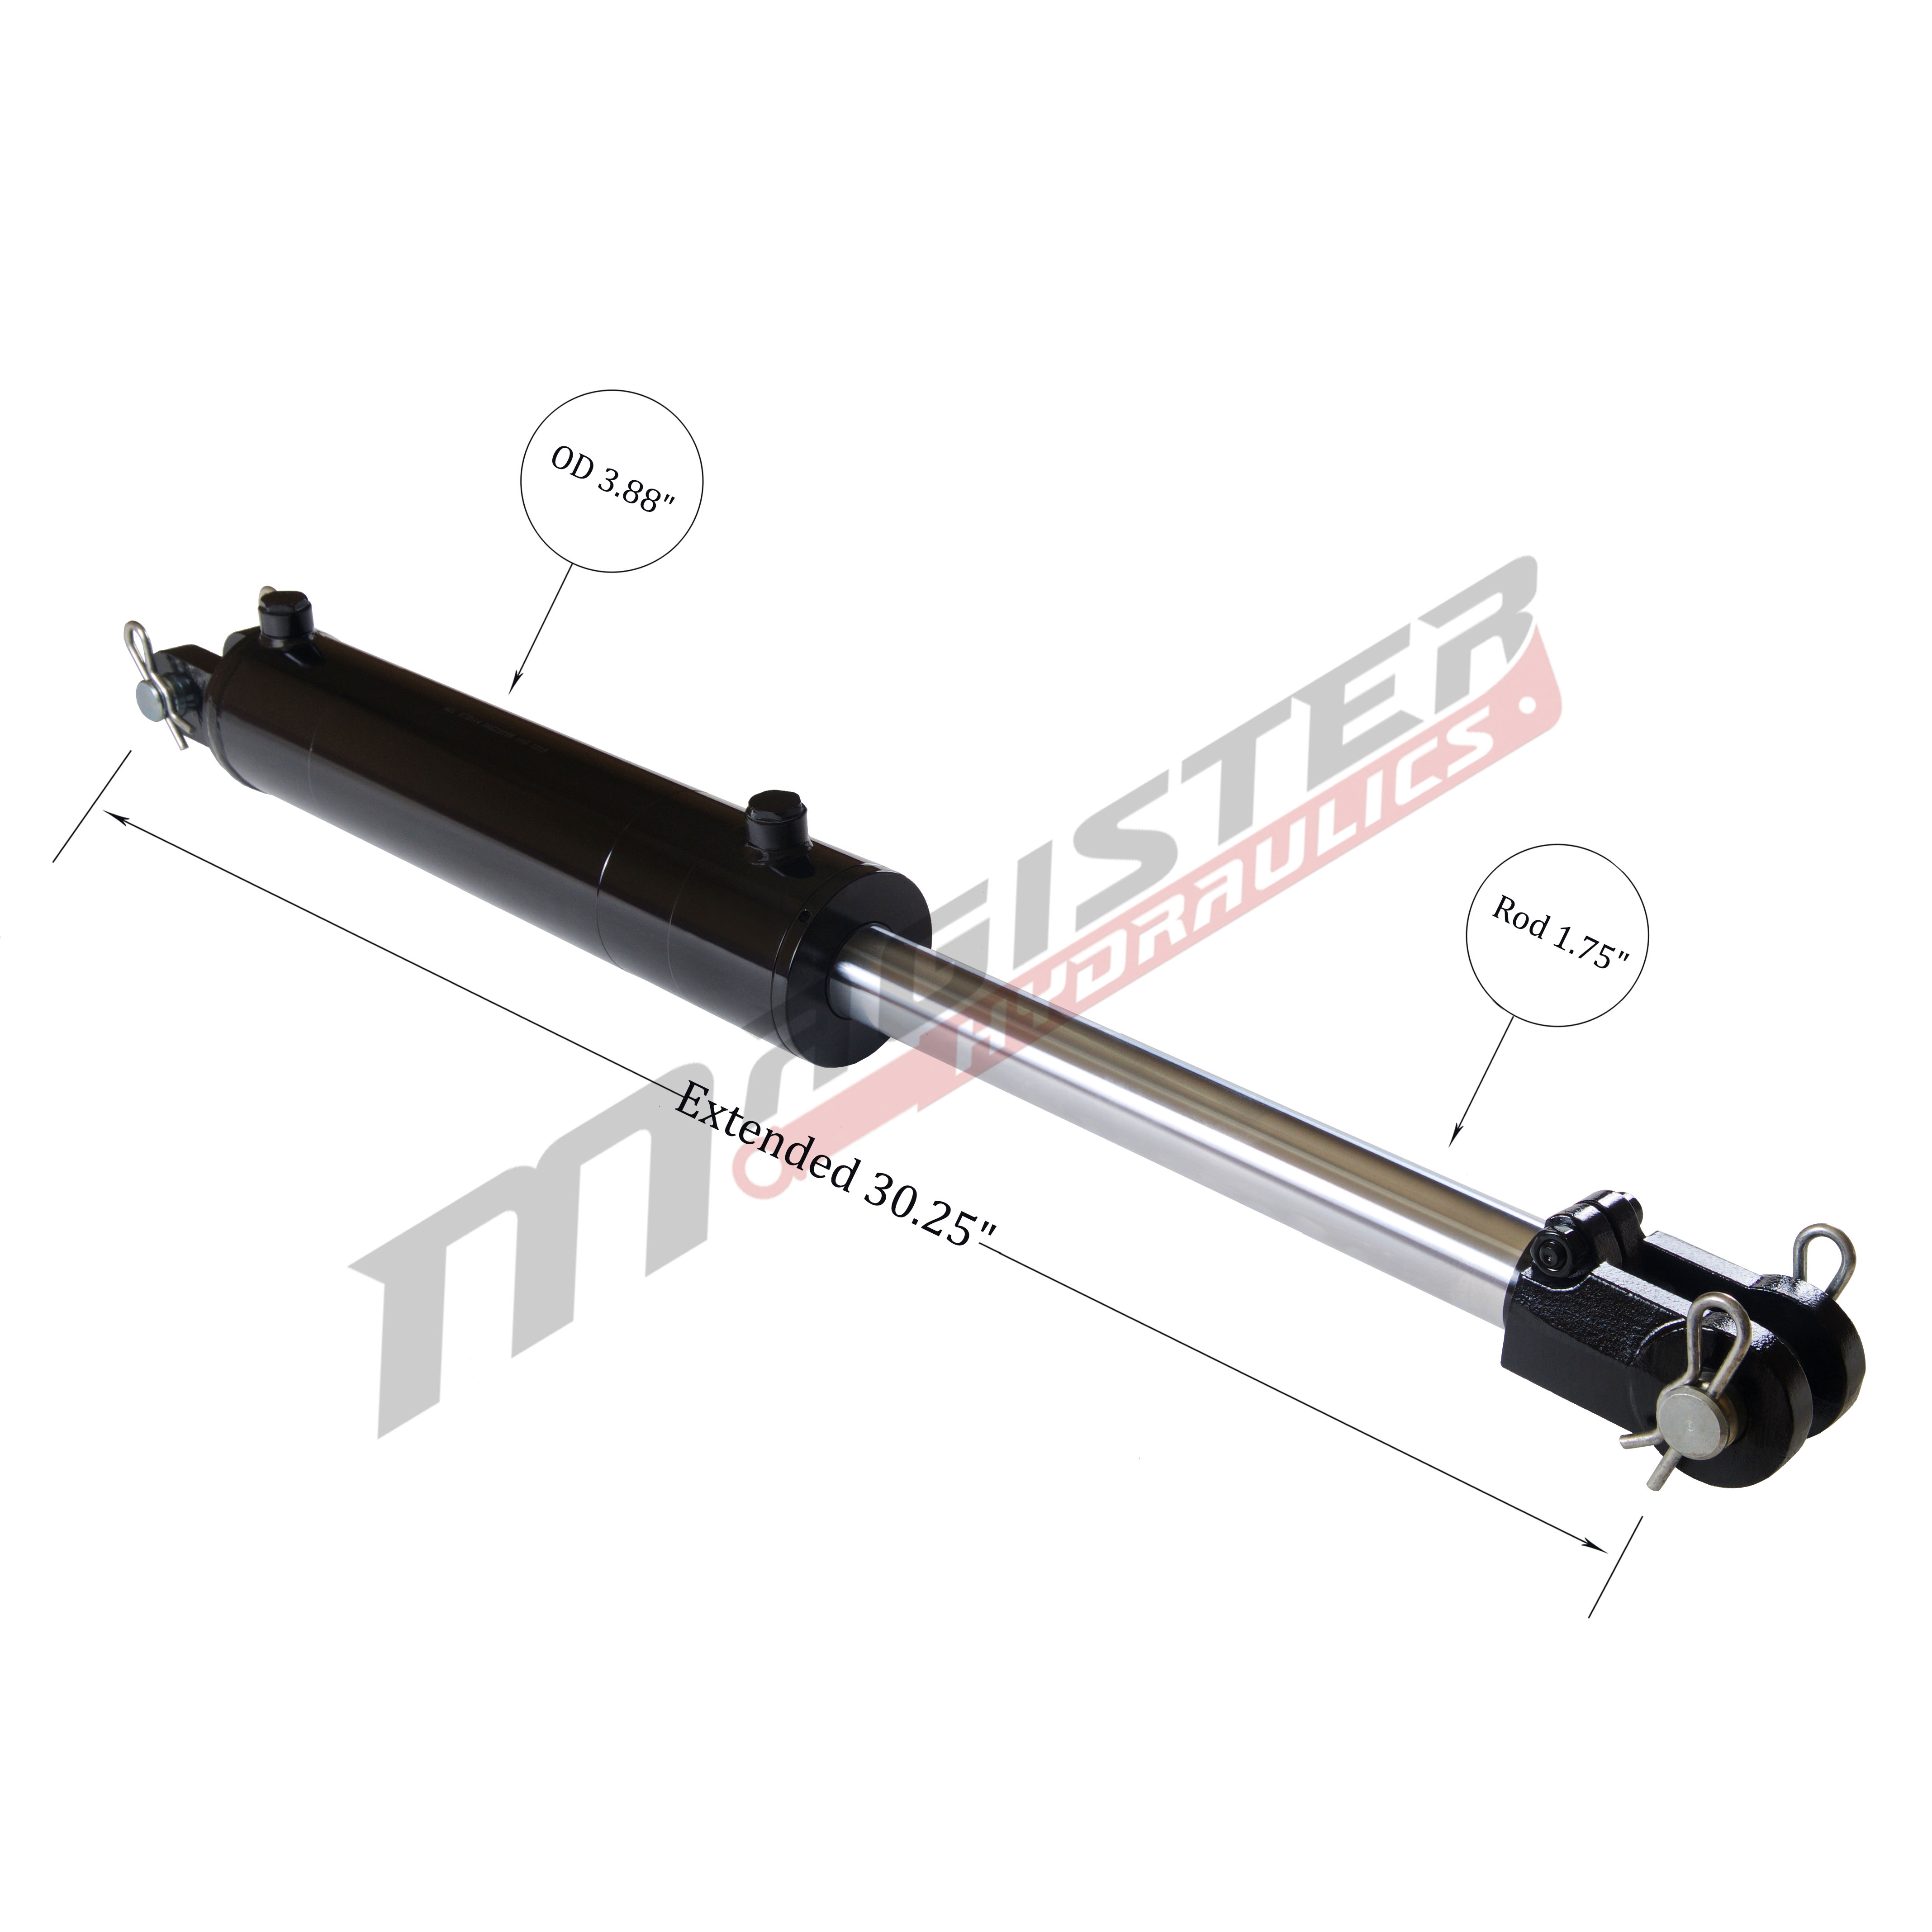 3.5 bore x 10 stroke hydraulic cylinder, welded clevis double acting cylinder | Magister Hydraulics